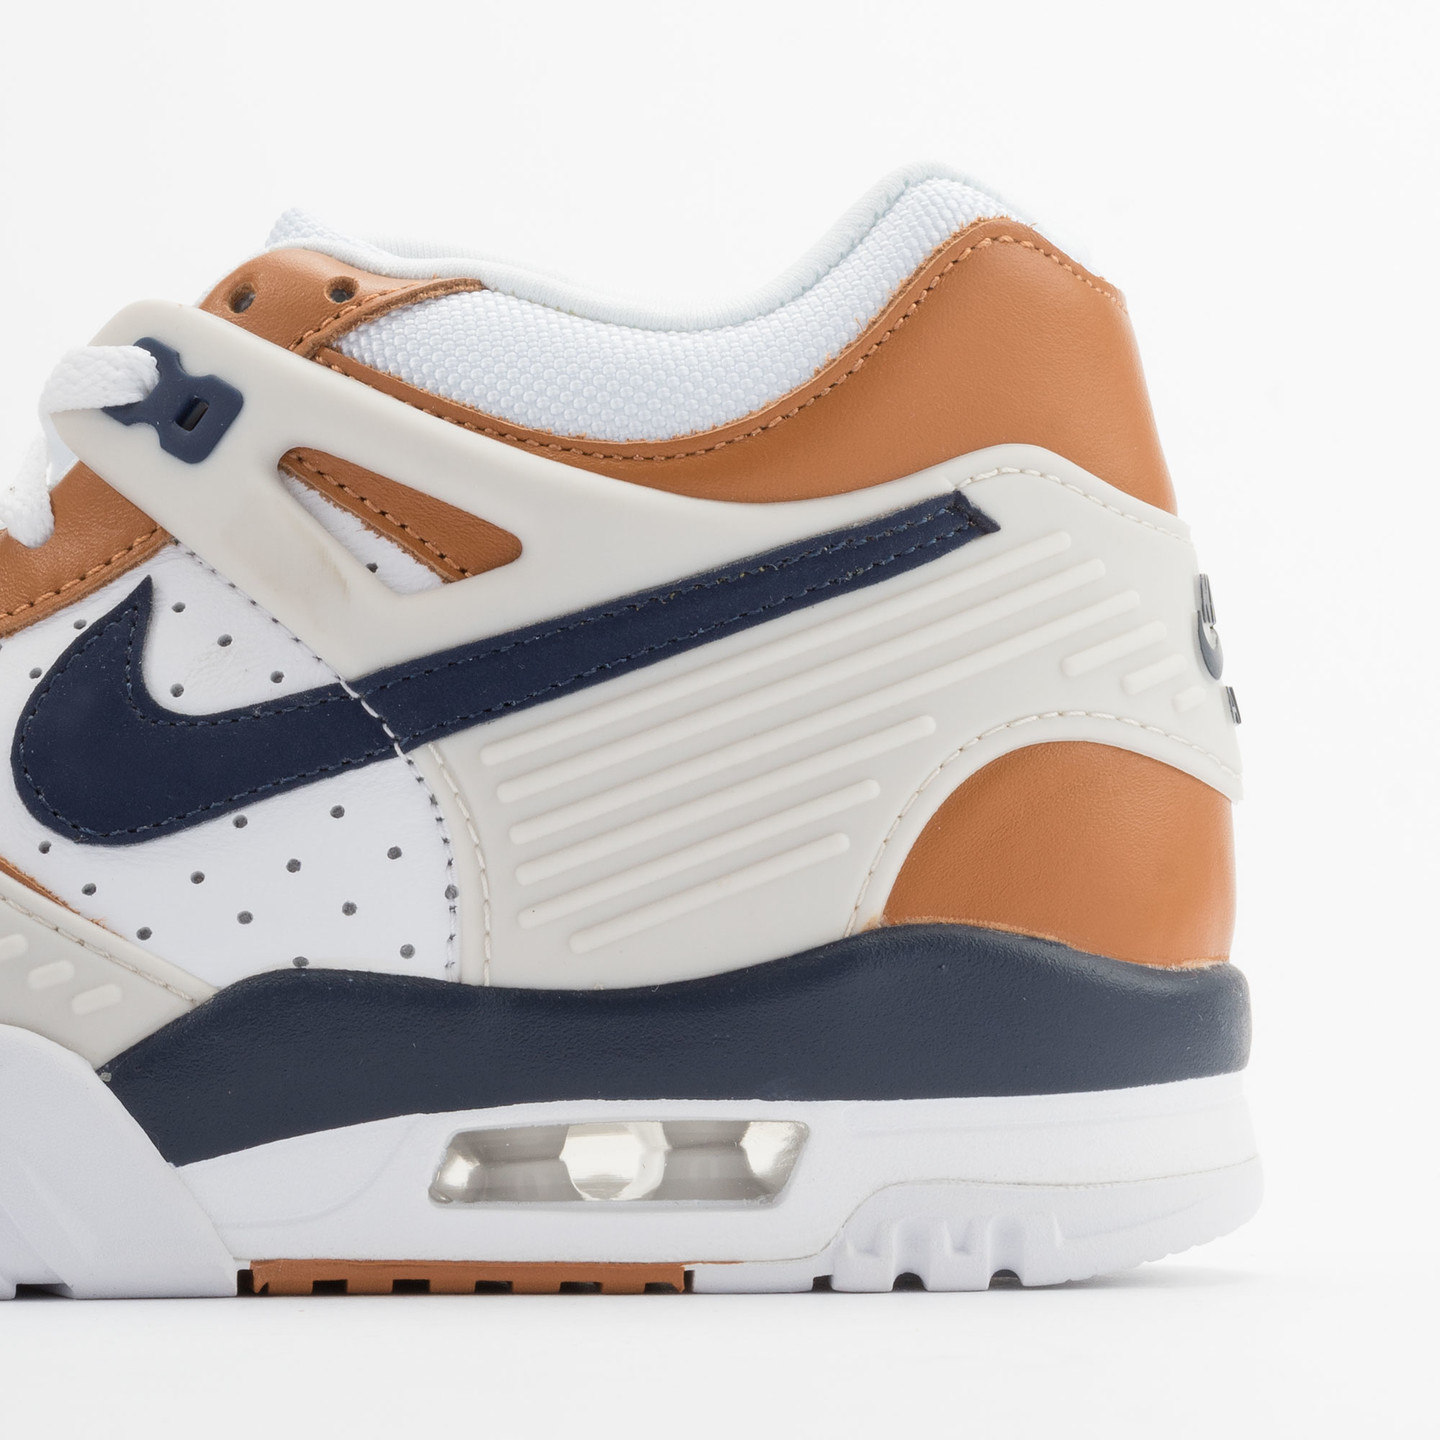 Nike Air Trainer 3 Premium Medicine Ball White/Mid Navy-Gngr-Lght Bn 705425-100-38.5